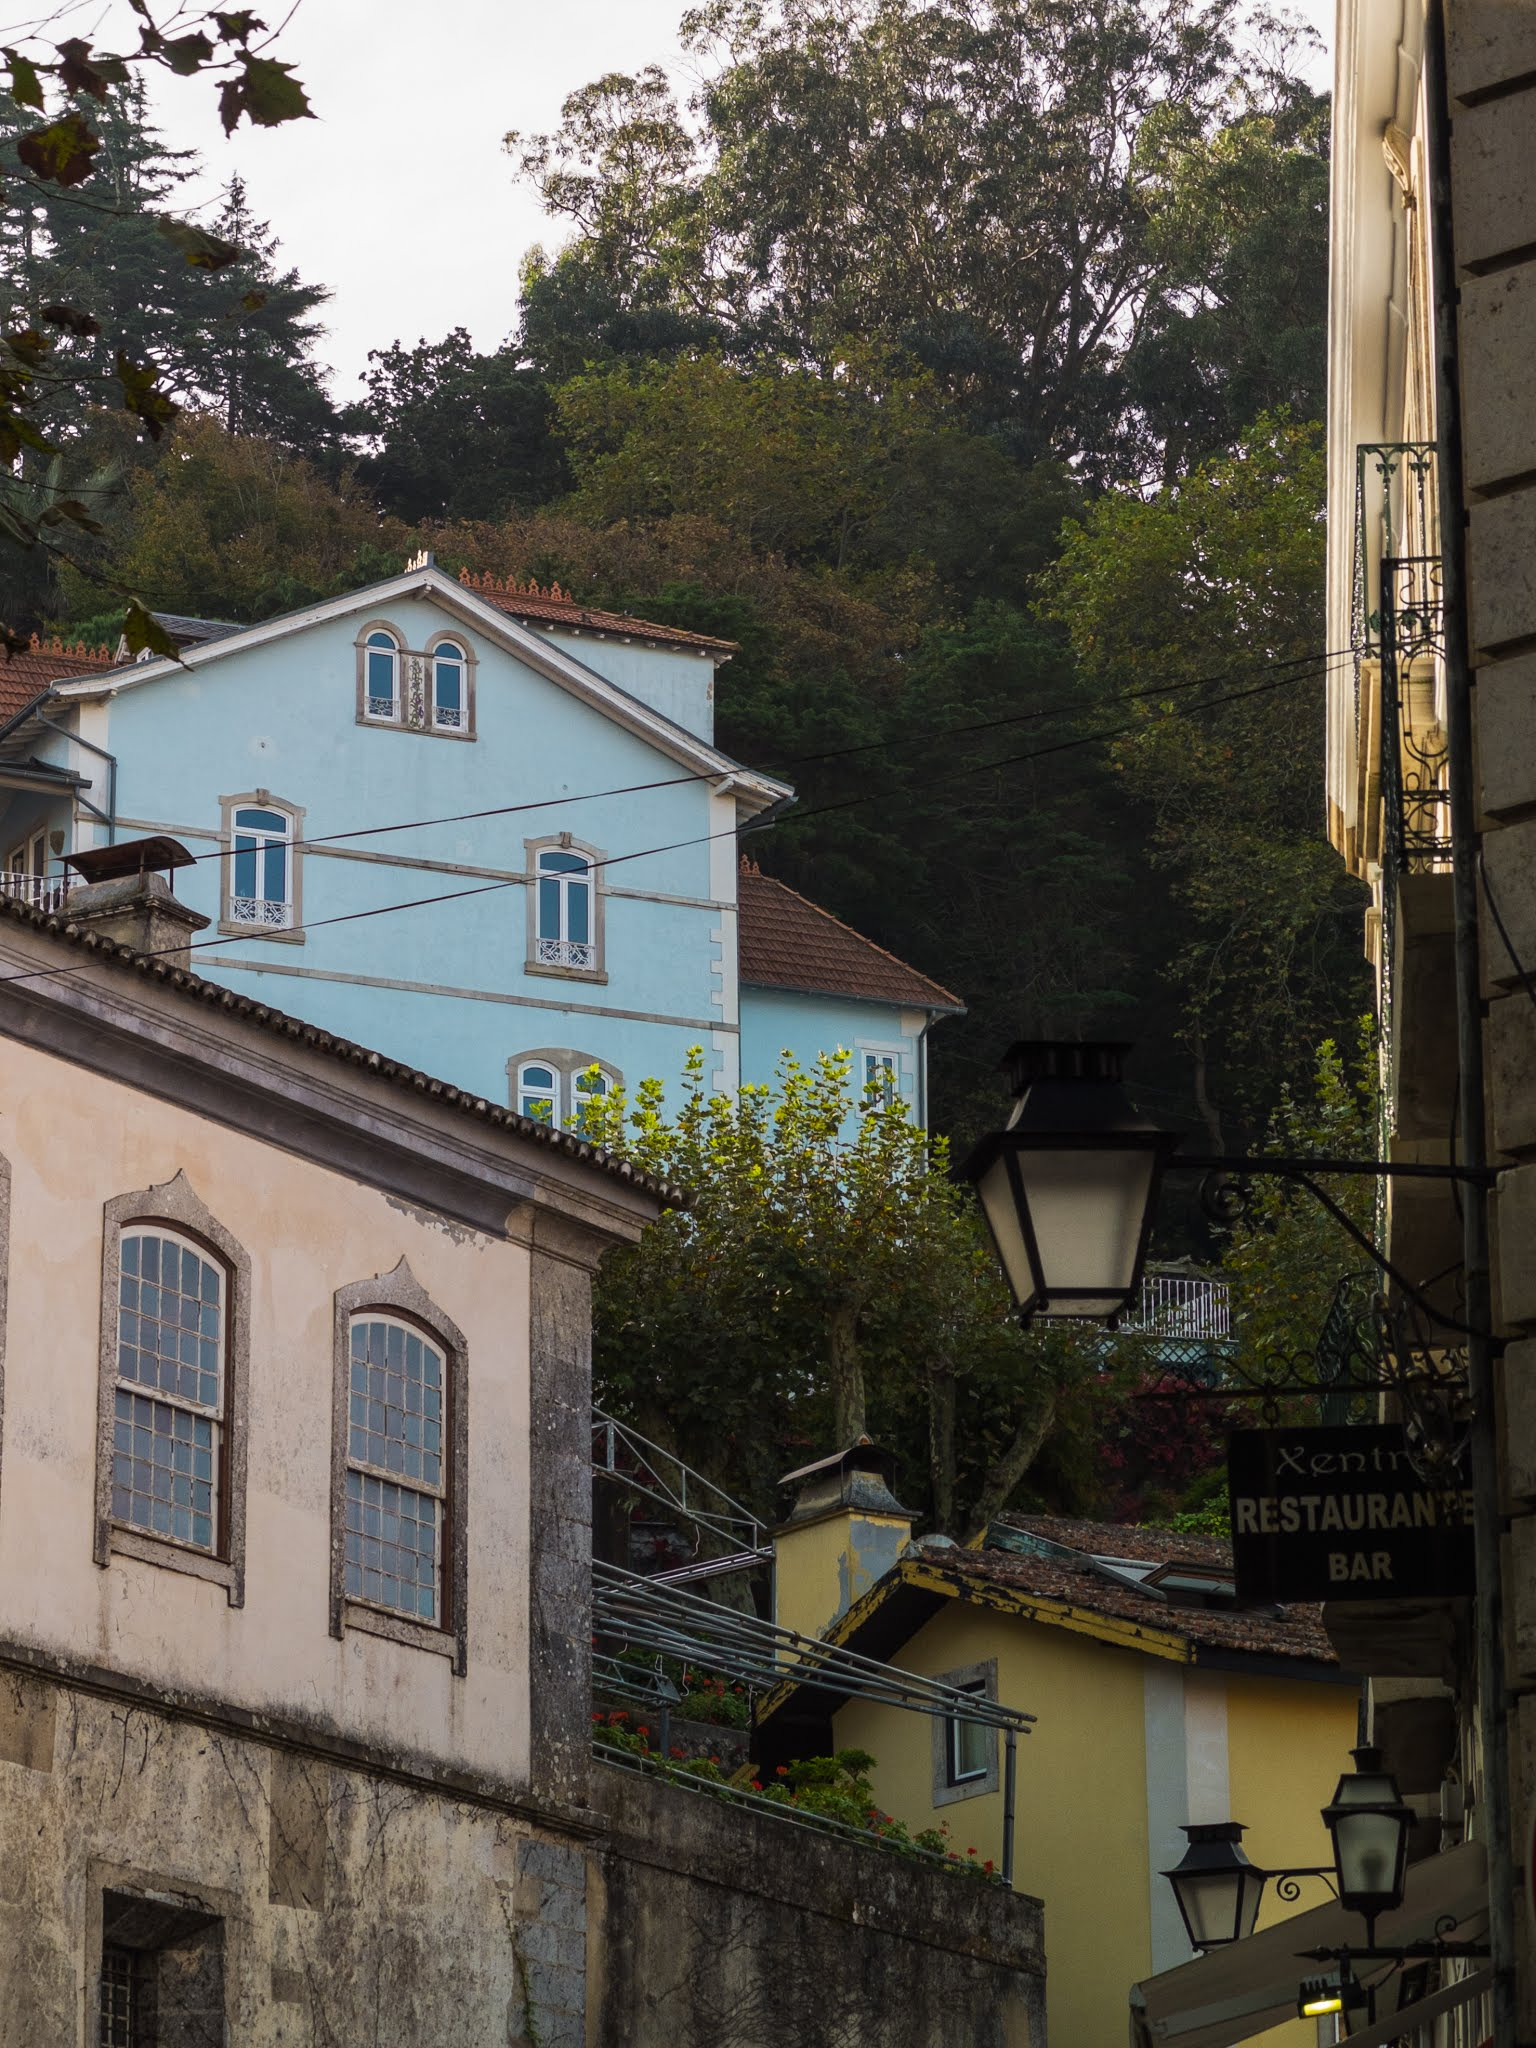 View of colourful buildings on the hillside in Sintra, Portugal.